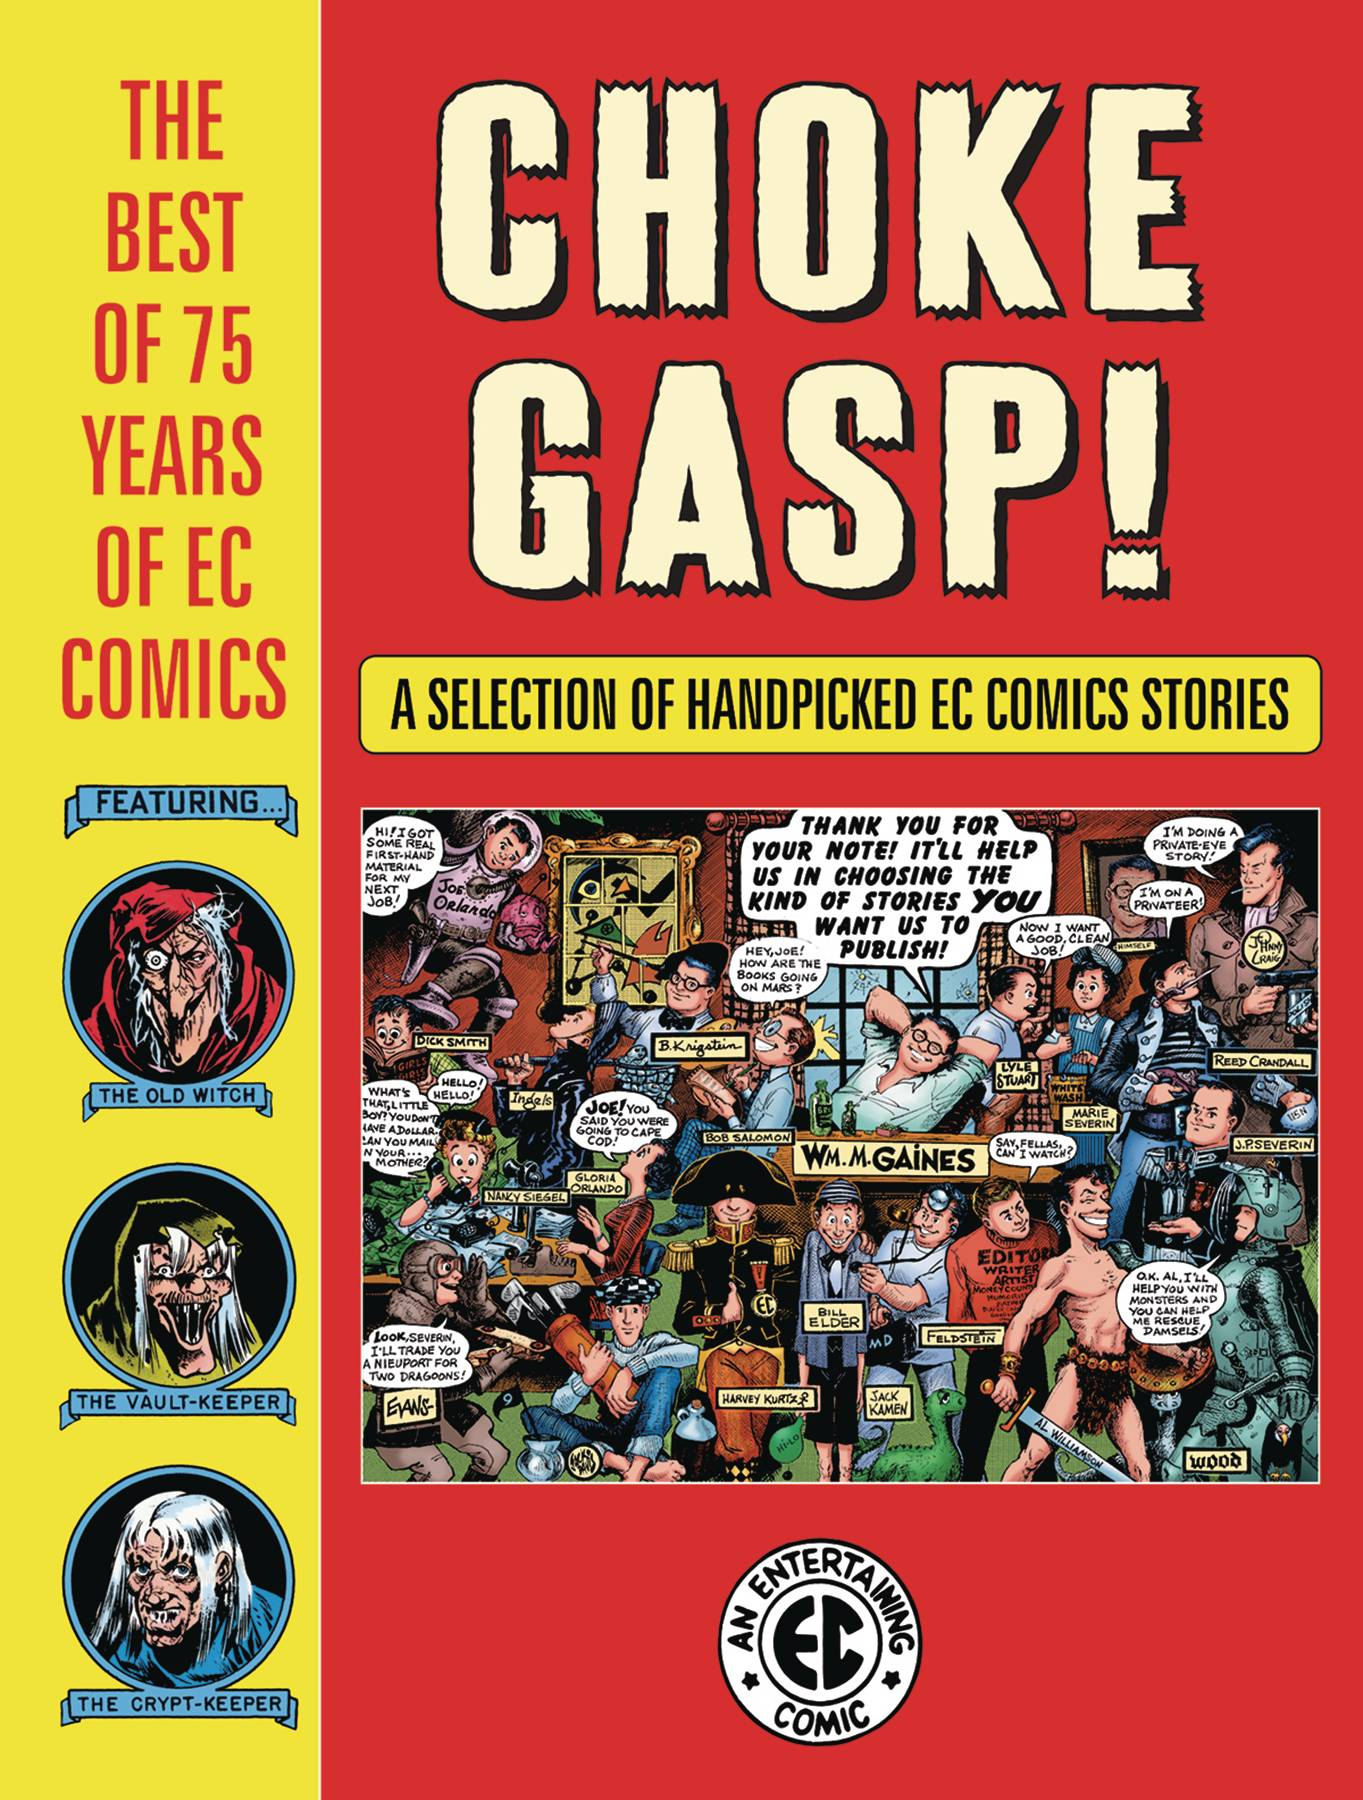 CHOKE GASP THE BEST OF 75 YEARS OF EC COMICS HC.jpg